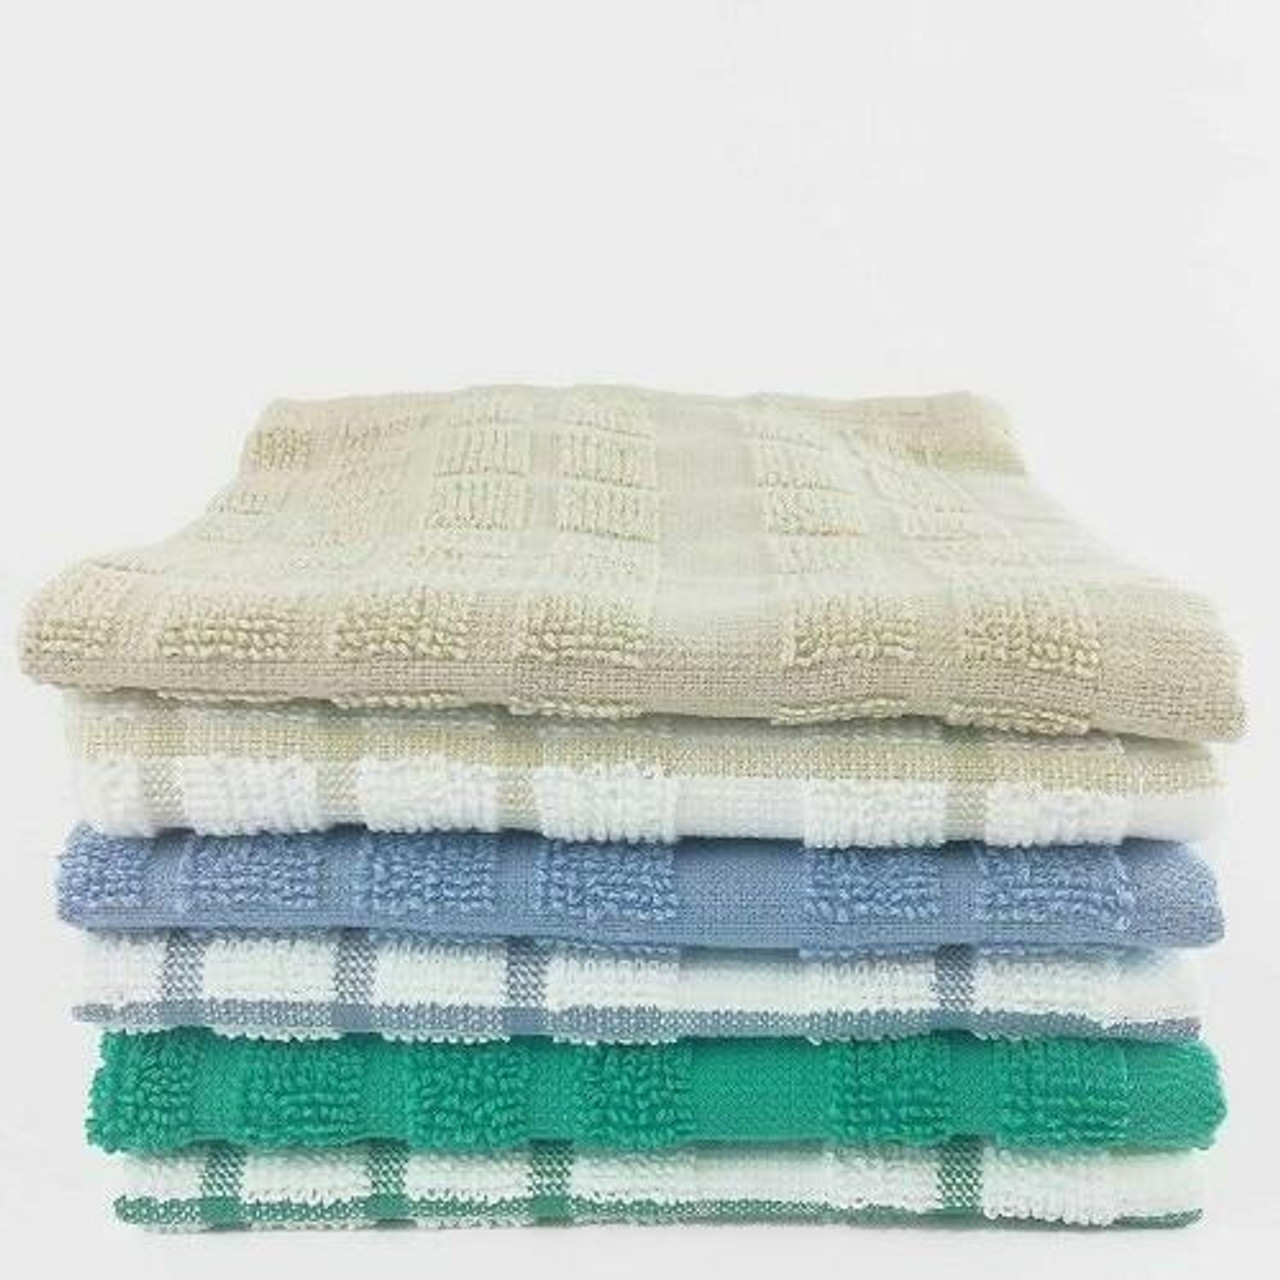 Martex Wovens by WestPoint Hospitality MARTEX or KITCHEN TOWEL or 12x12 or 100percent RING SPUN COTTON LOOPS or 12 DZ PER CASE